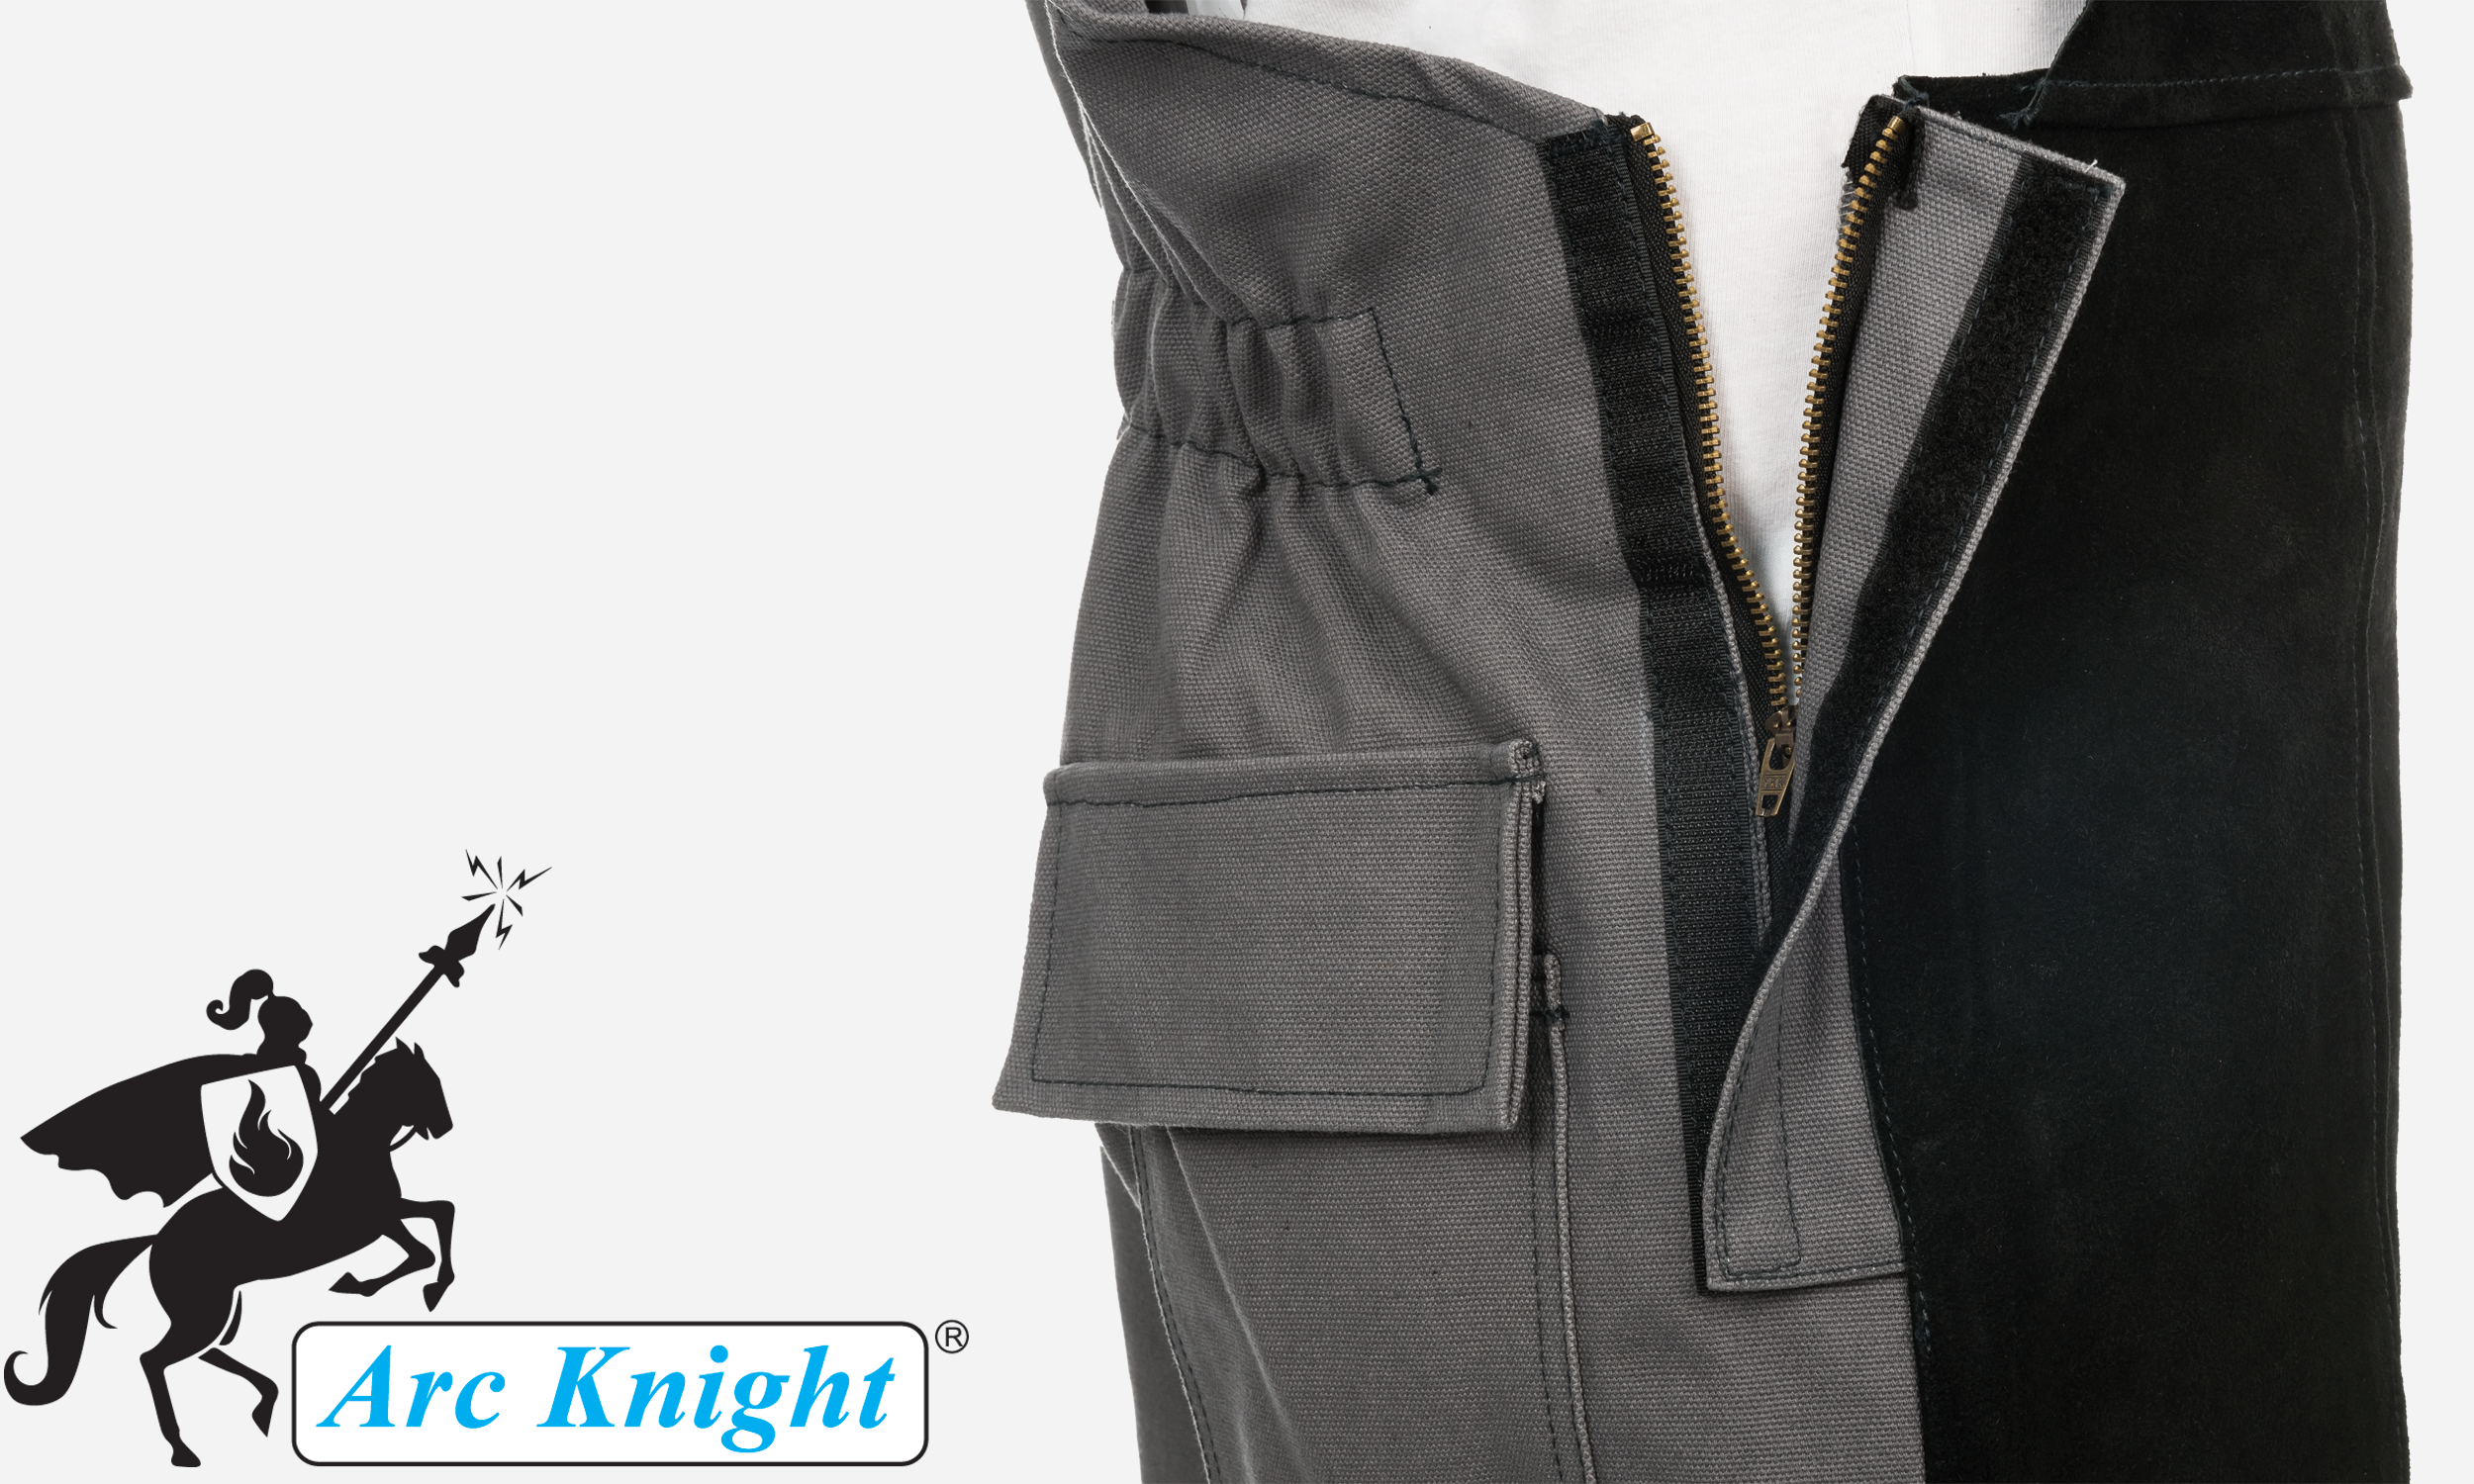 38-4340 Arc Knight Overall Zipper Opening.png